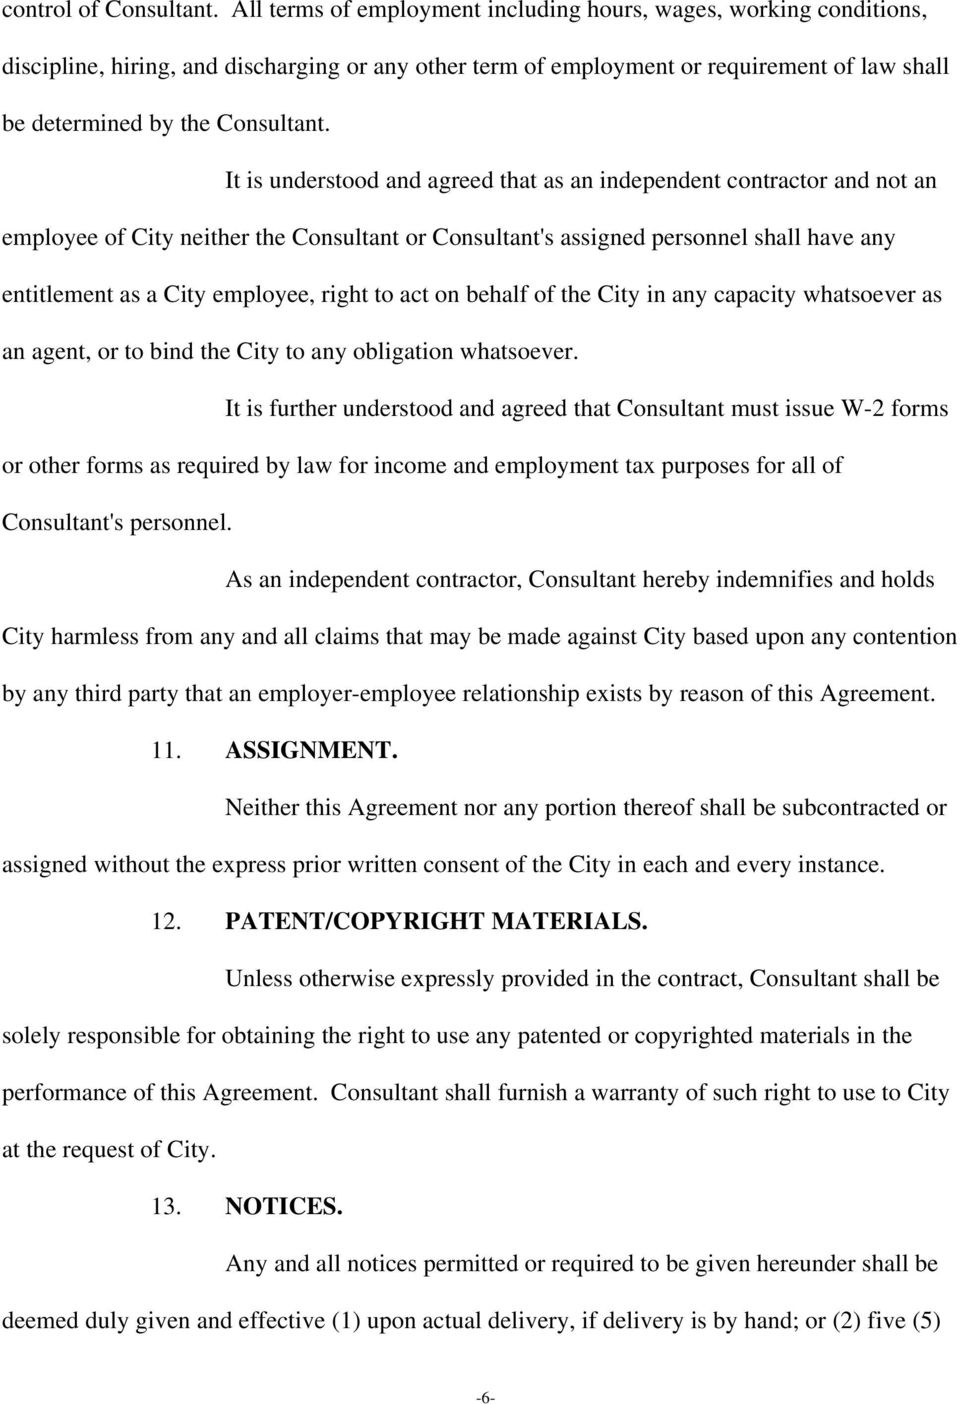 It is understood and agreed that as an independent contractor and not an employee of City neither the Consultant or Consultant's assigned personnel shall have any entitlement as a City employee,